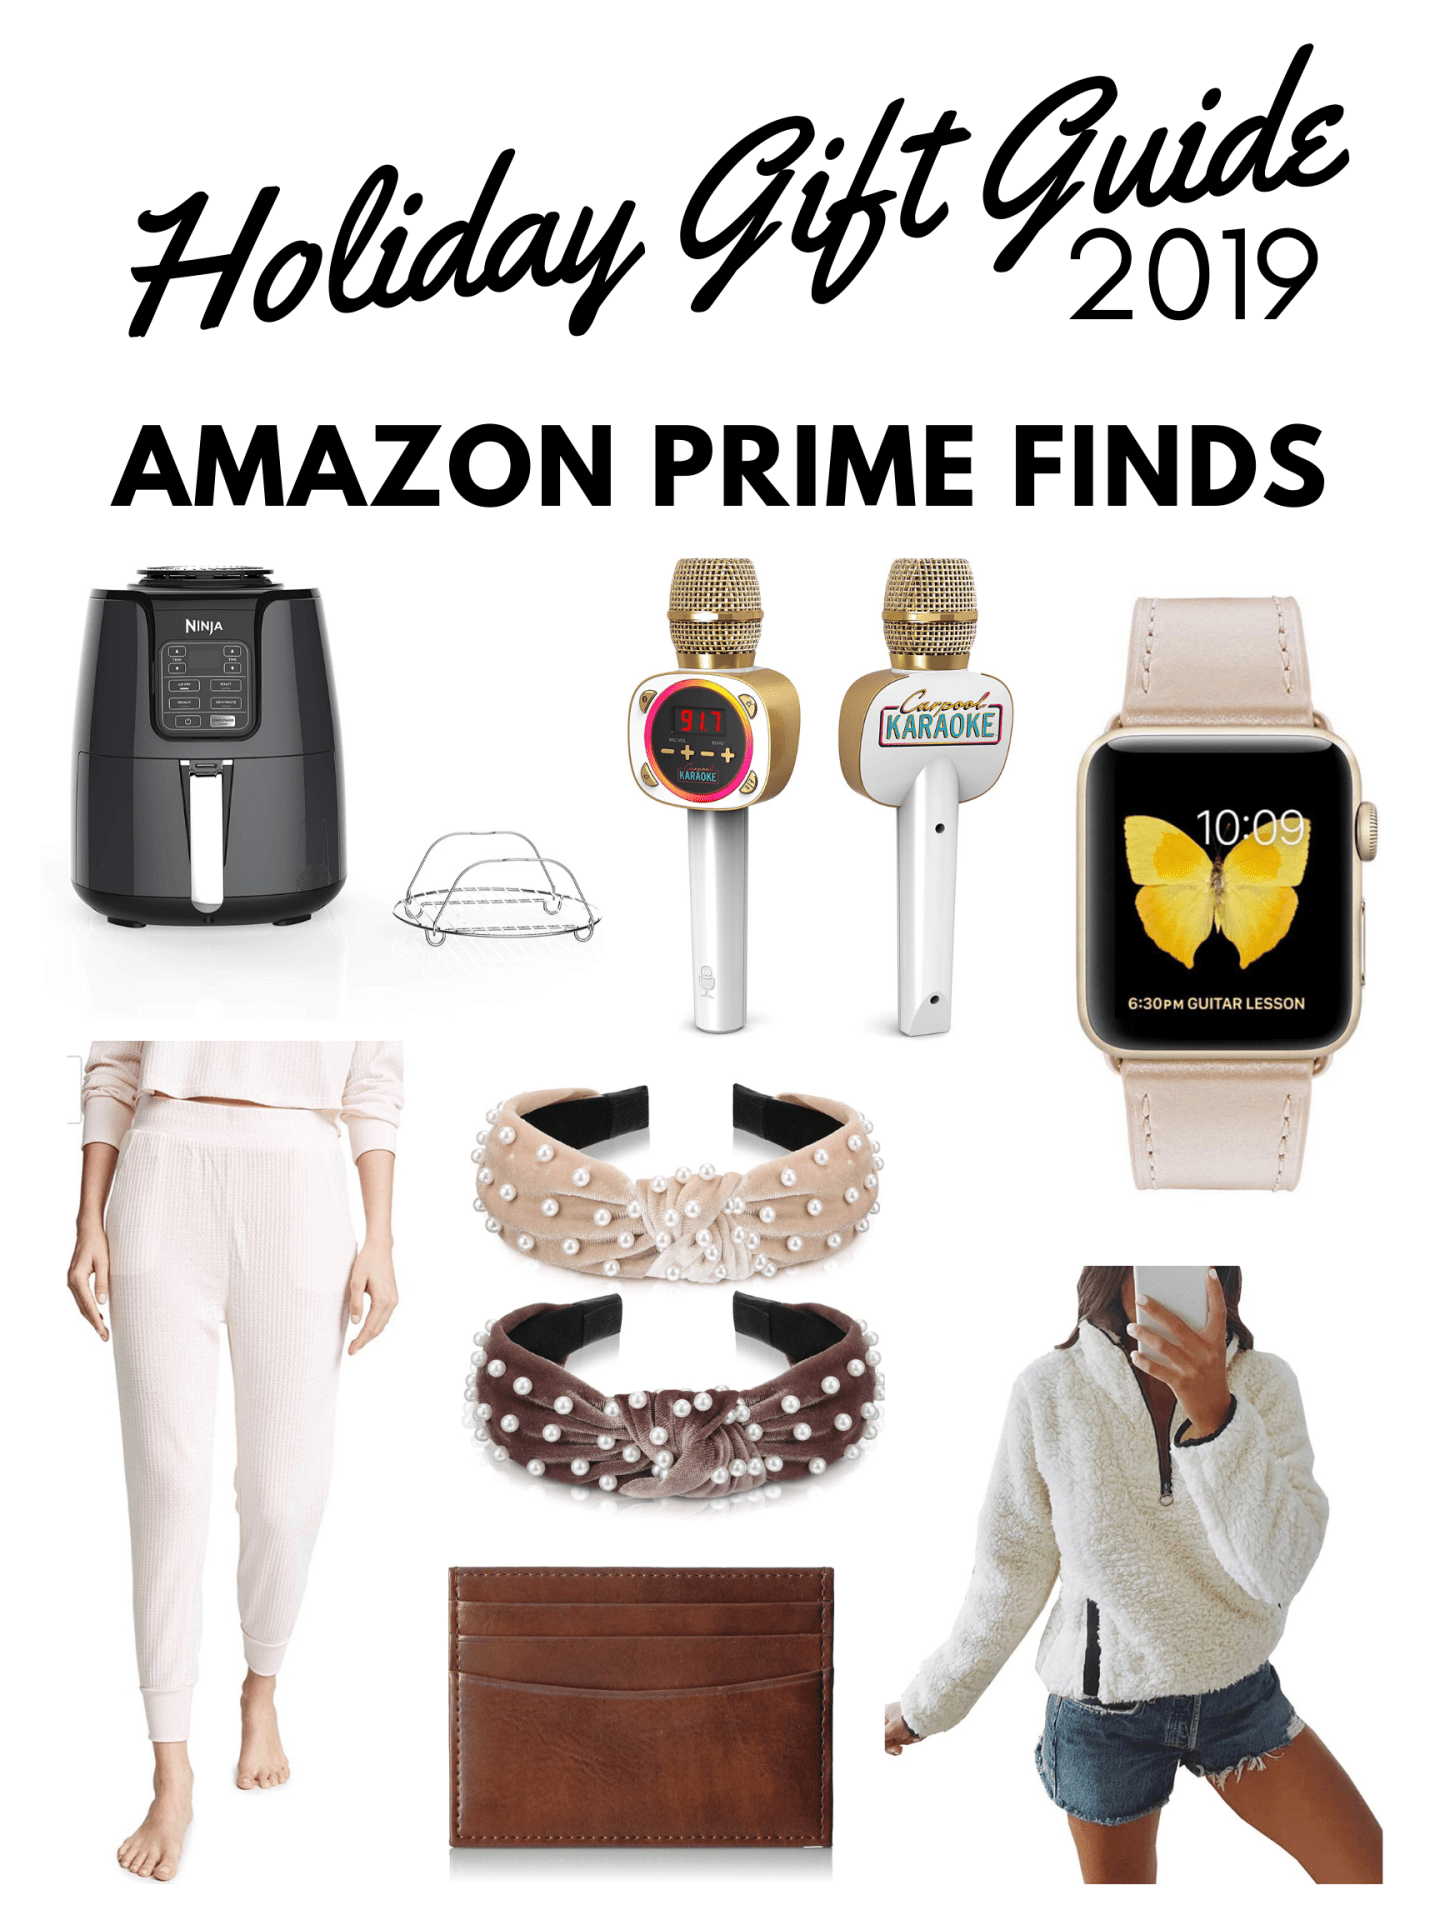 Amazon Prime Gifts to Love this Holiday Season!